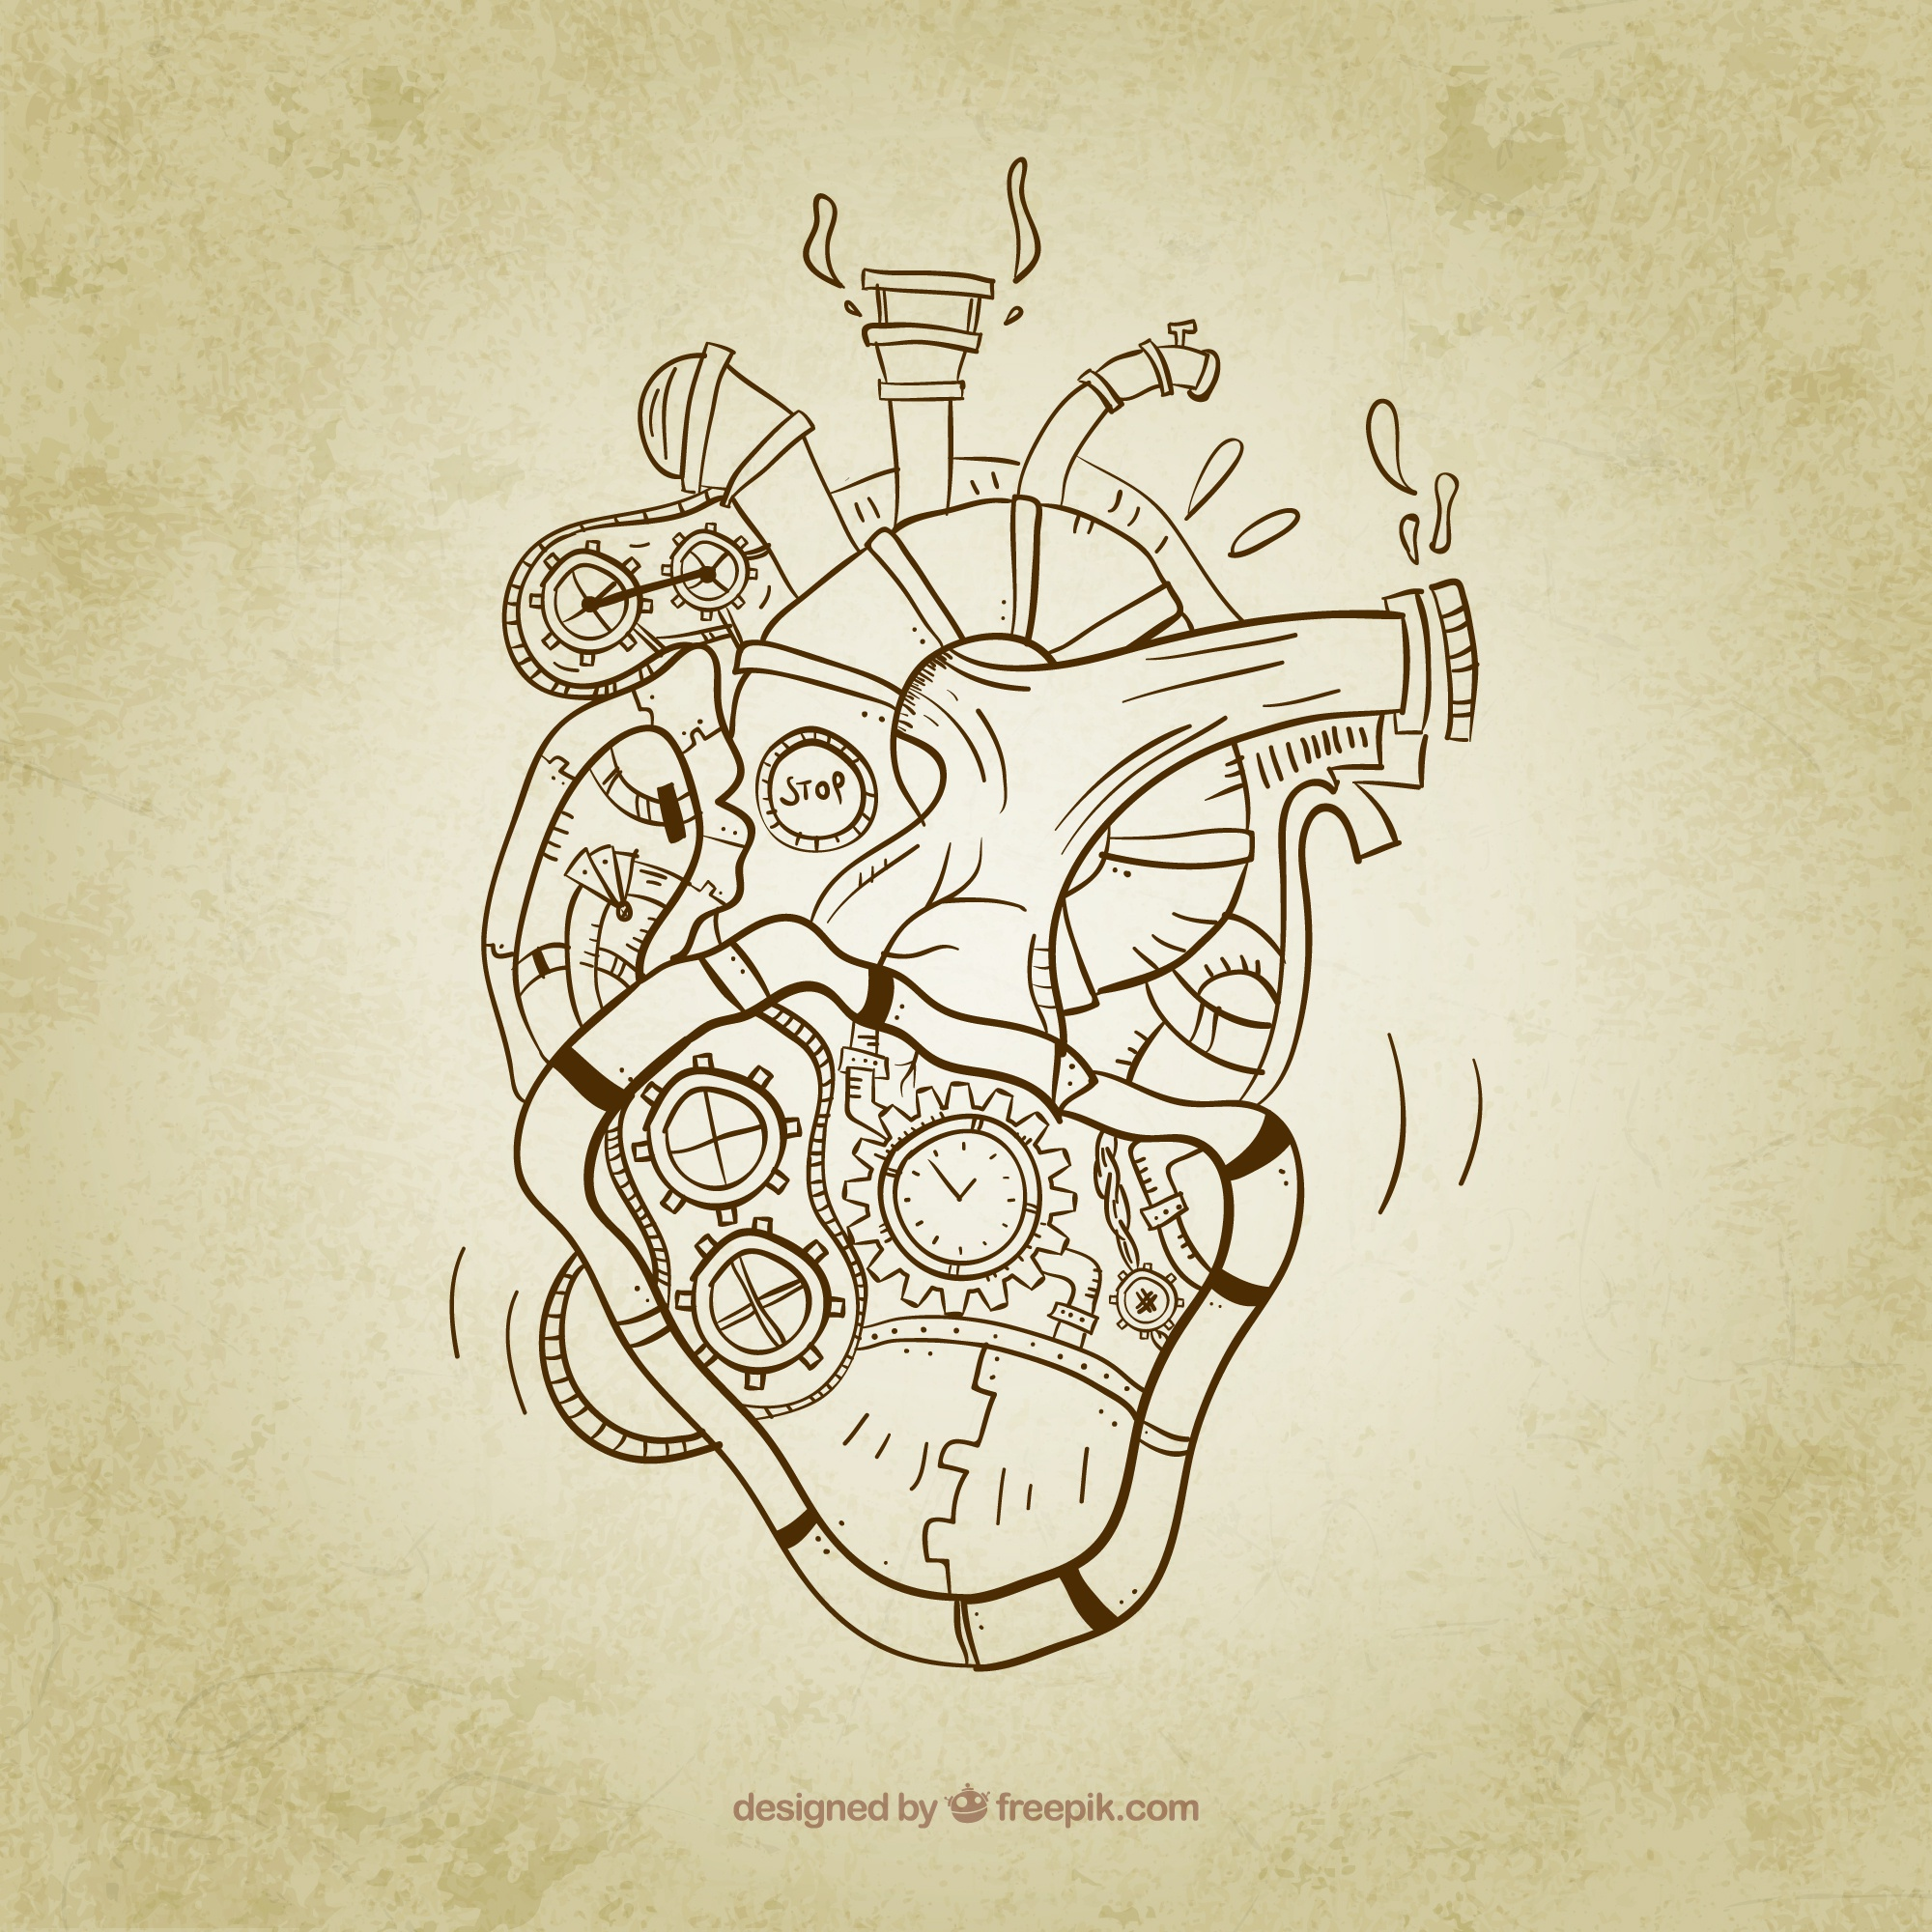 Sketchy steampunk heart